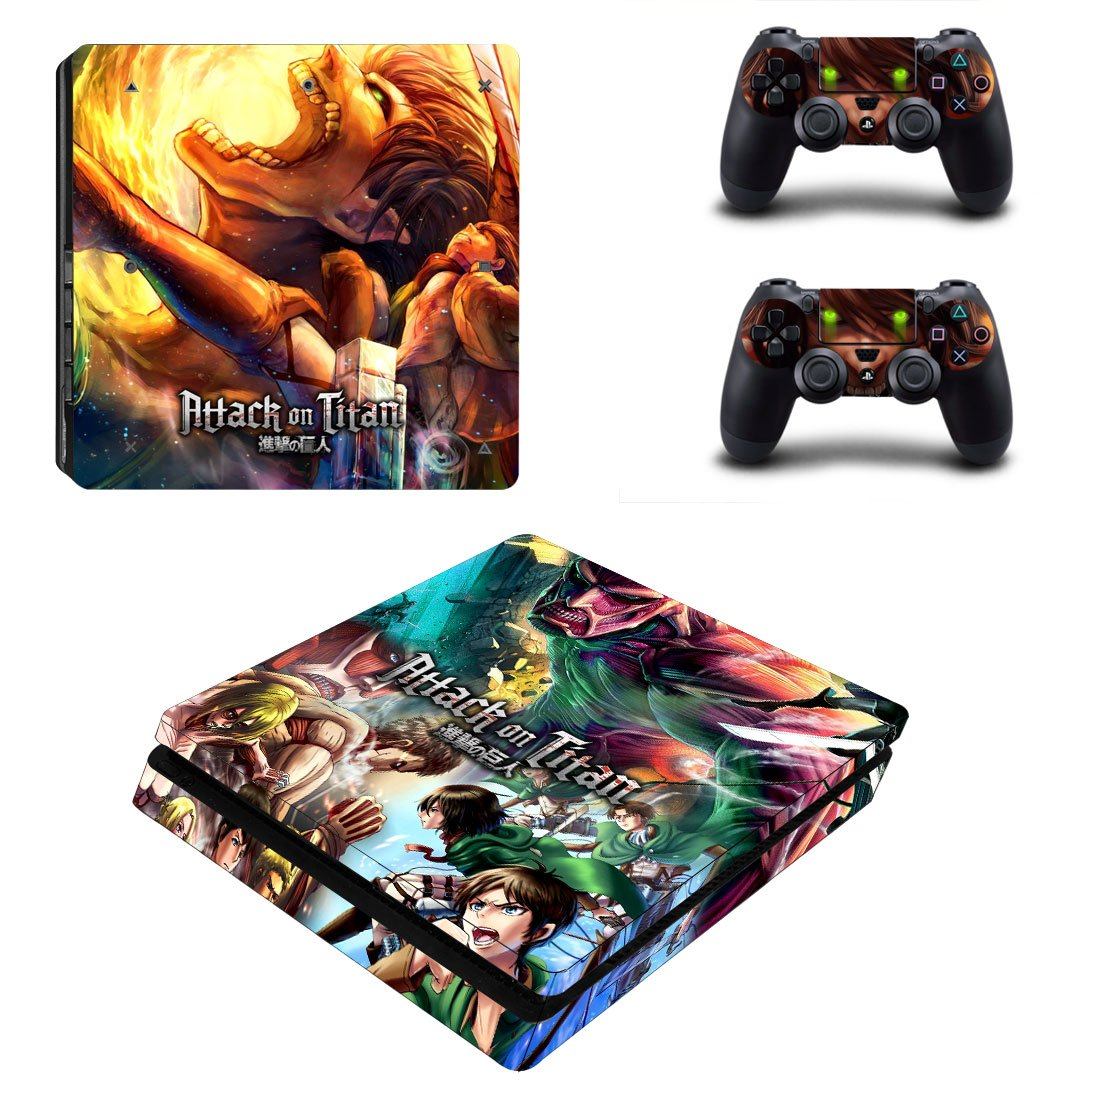 Attack On Titan PS4 Slim Skin Sticker Decals PS4 Console And Controllers Protect Your PS4